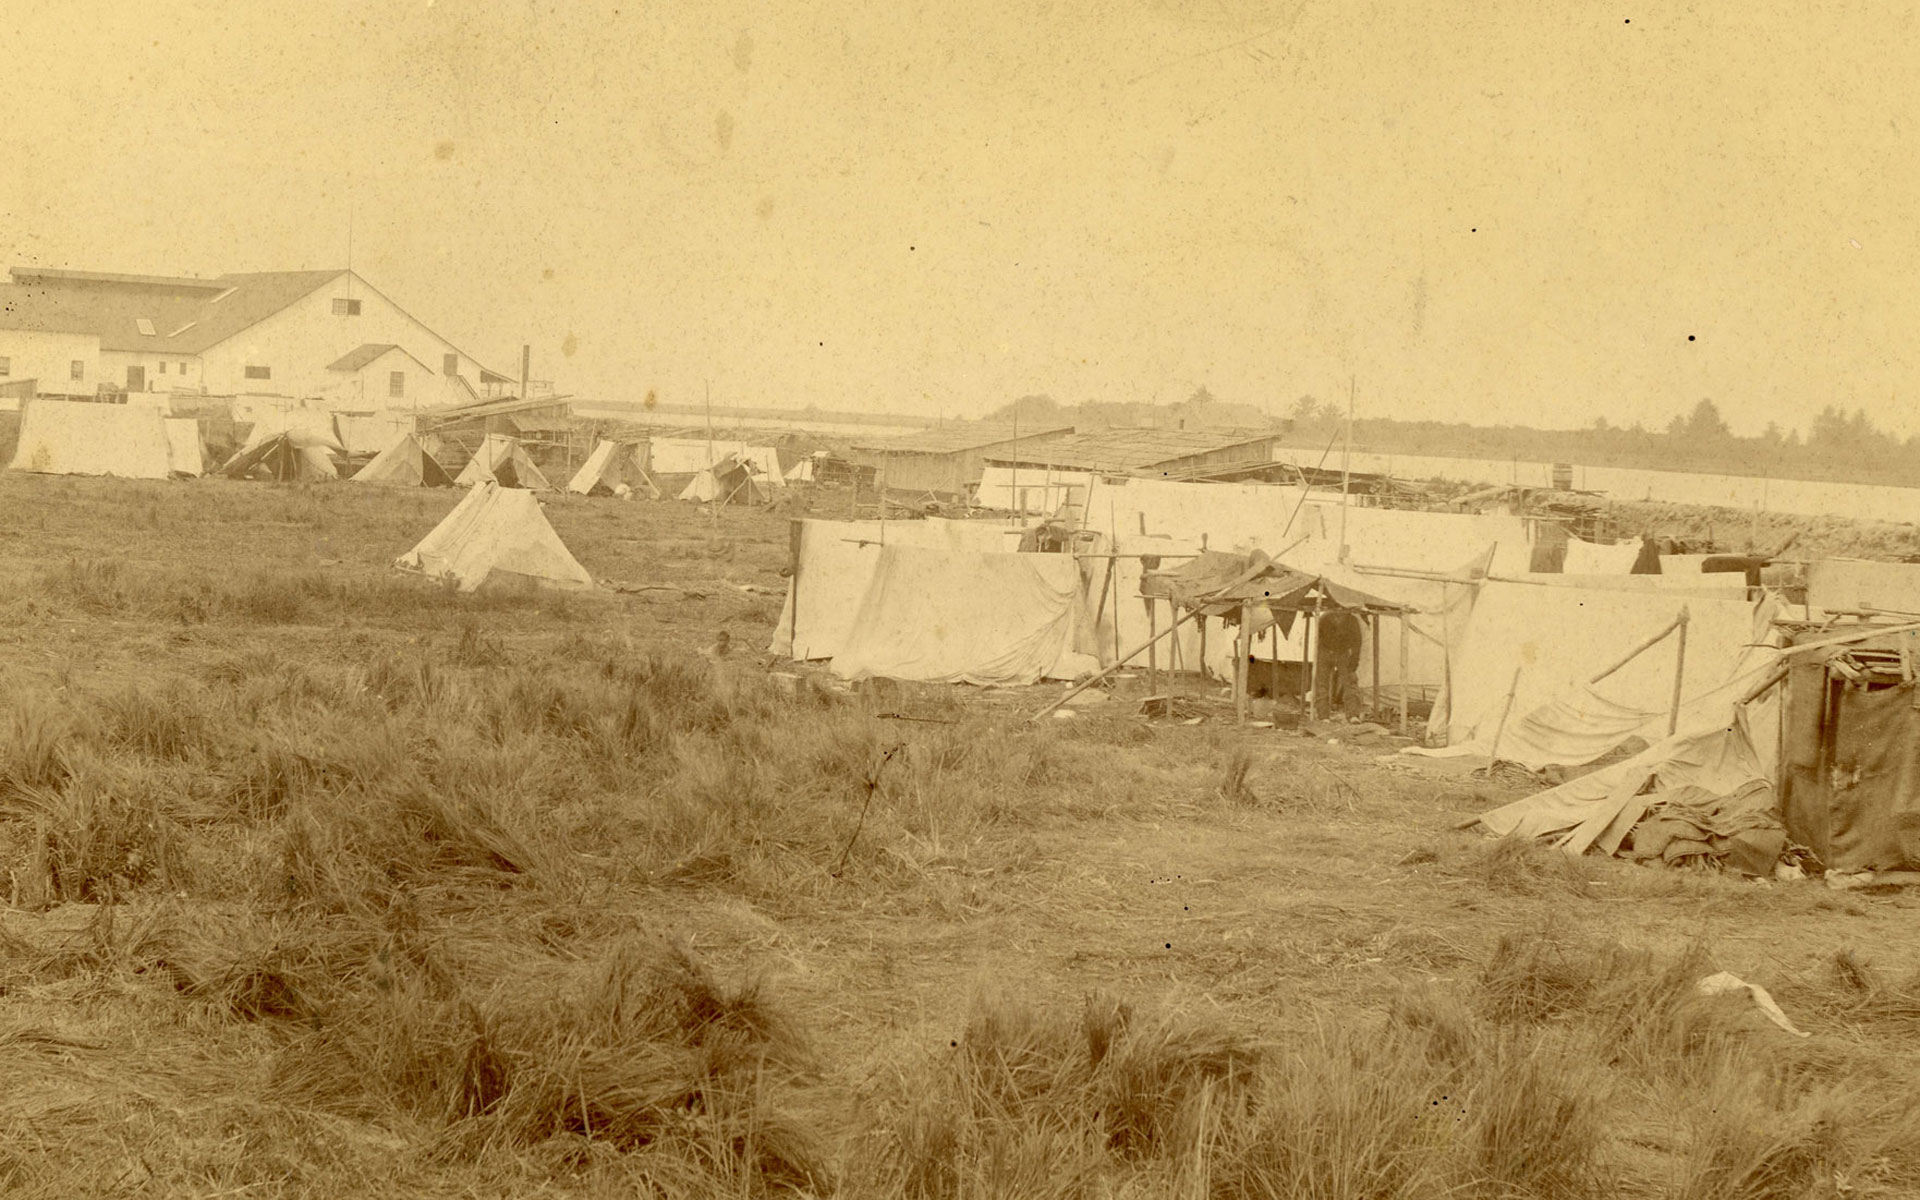 Grouping of tents on a grassy field with a cannery building in the background.